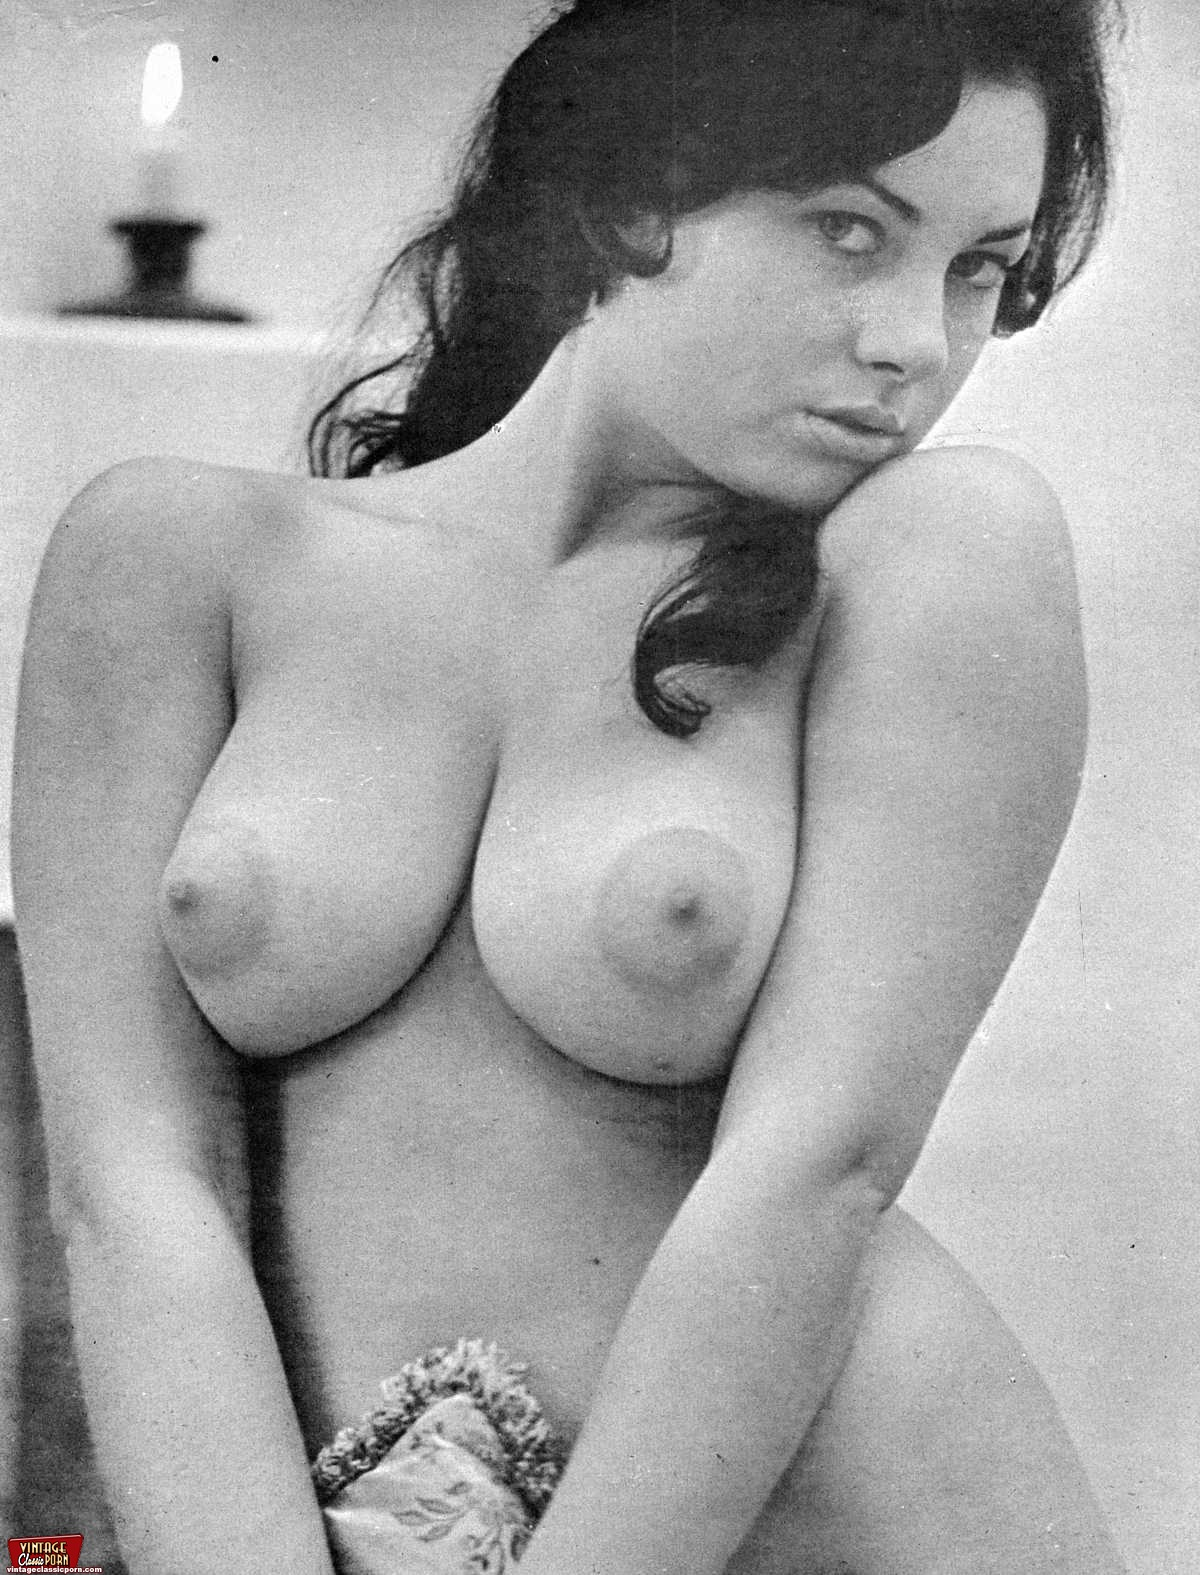 Porn nudes vintage from